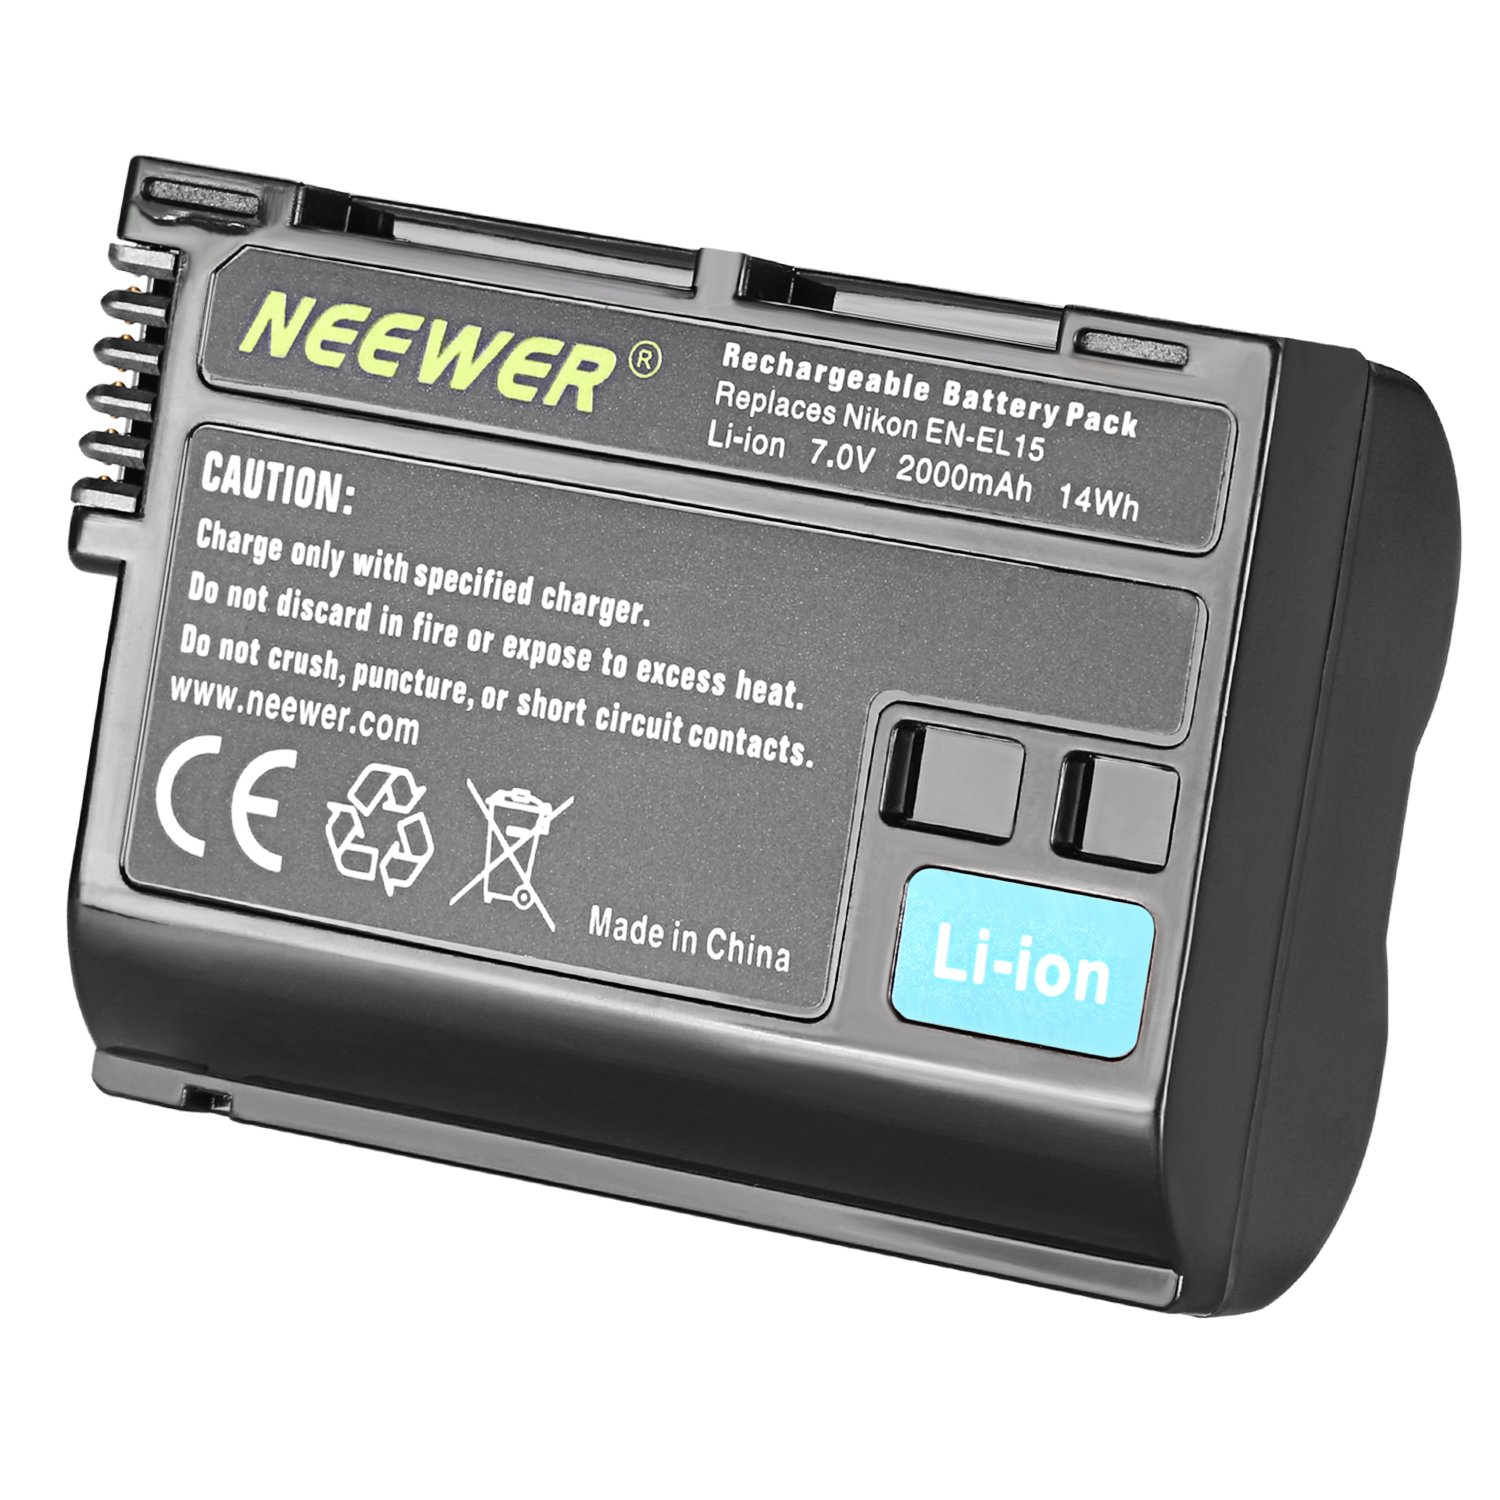 Neewer En El15 Replacement Battery For Nikon D7000 D800 Imaging Products Parts And Controls D800e V1 Mb D11 D12 Digital Camera Batteries Photo